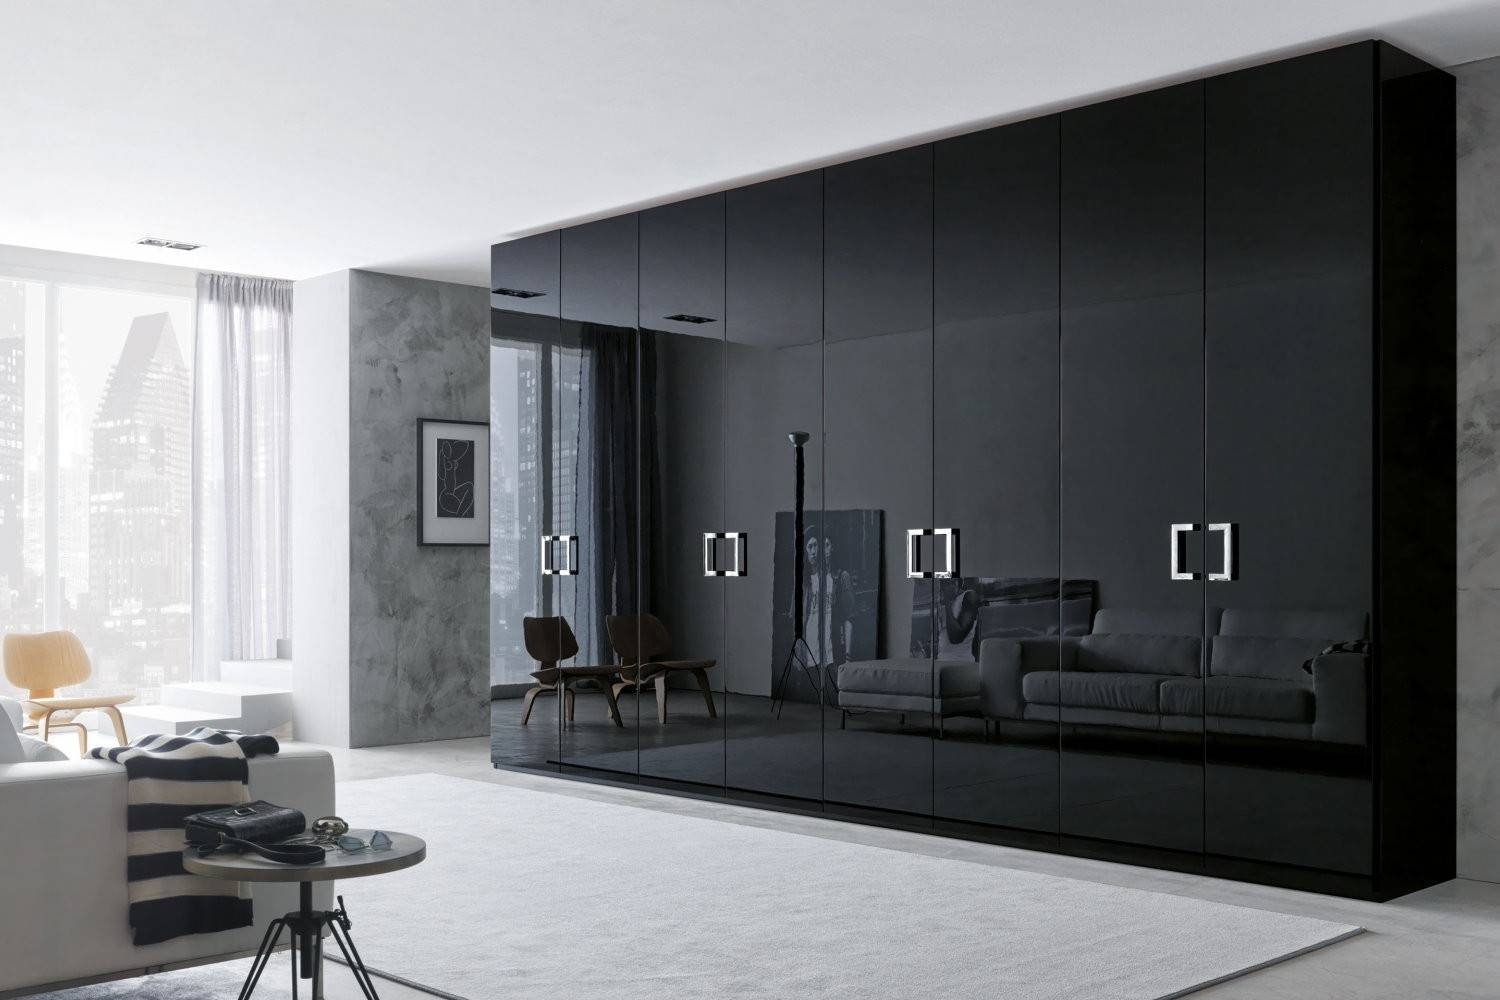 Alluring Wardrobe Closet: Wardrobe Closet Wardrobes With Mirror intended for Black Wardrobes With Mirror (Image 1 of 15)